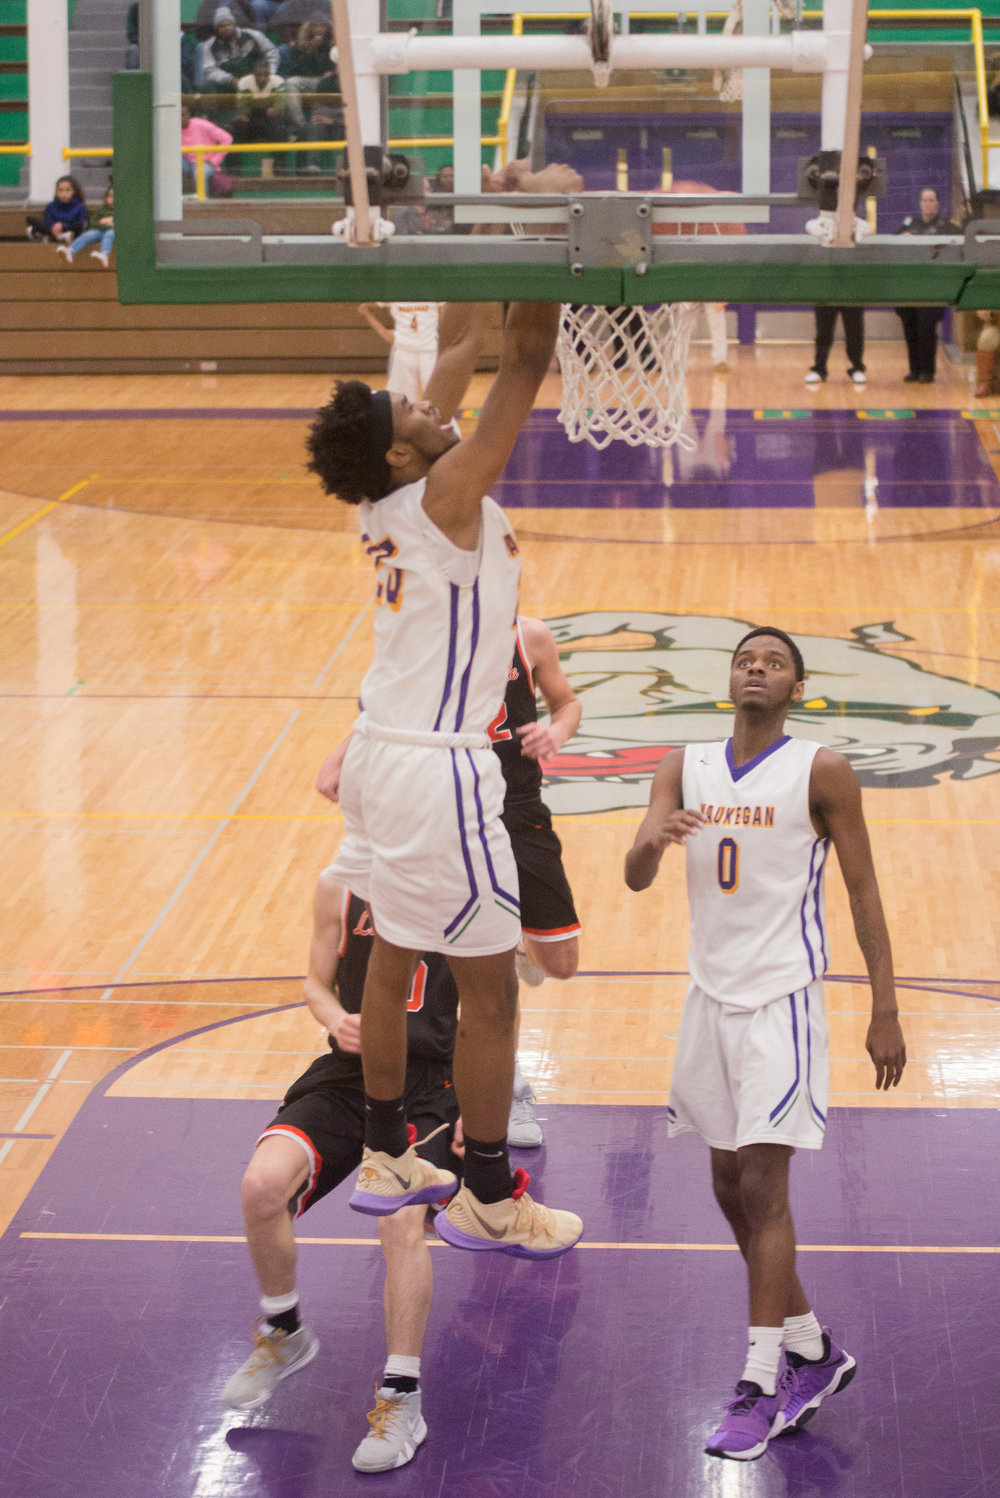 39-Bryant-Brown-dunks-vs-Libertyville.jpg